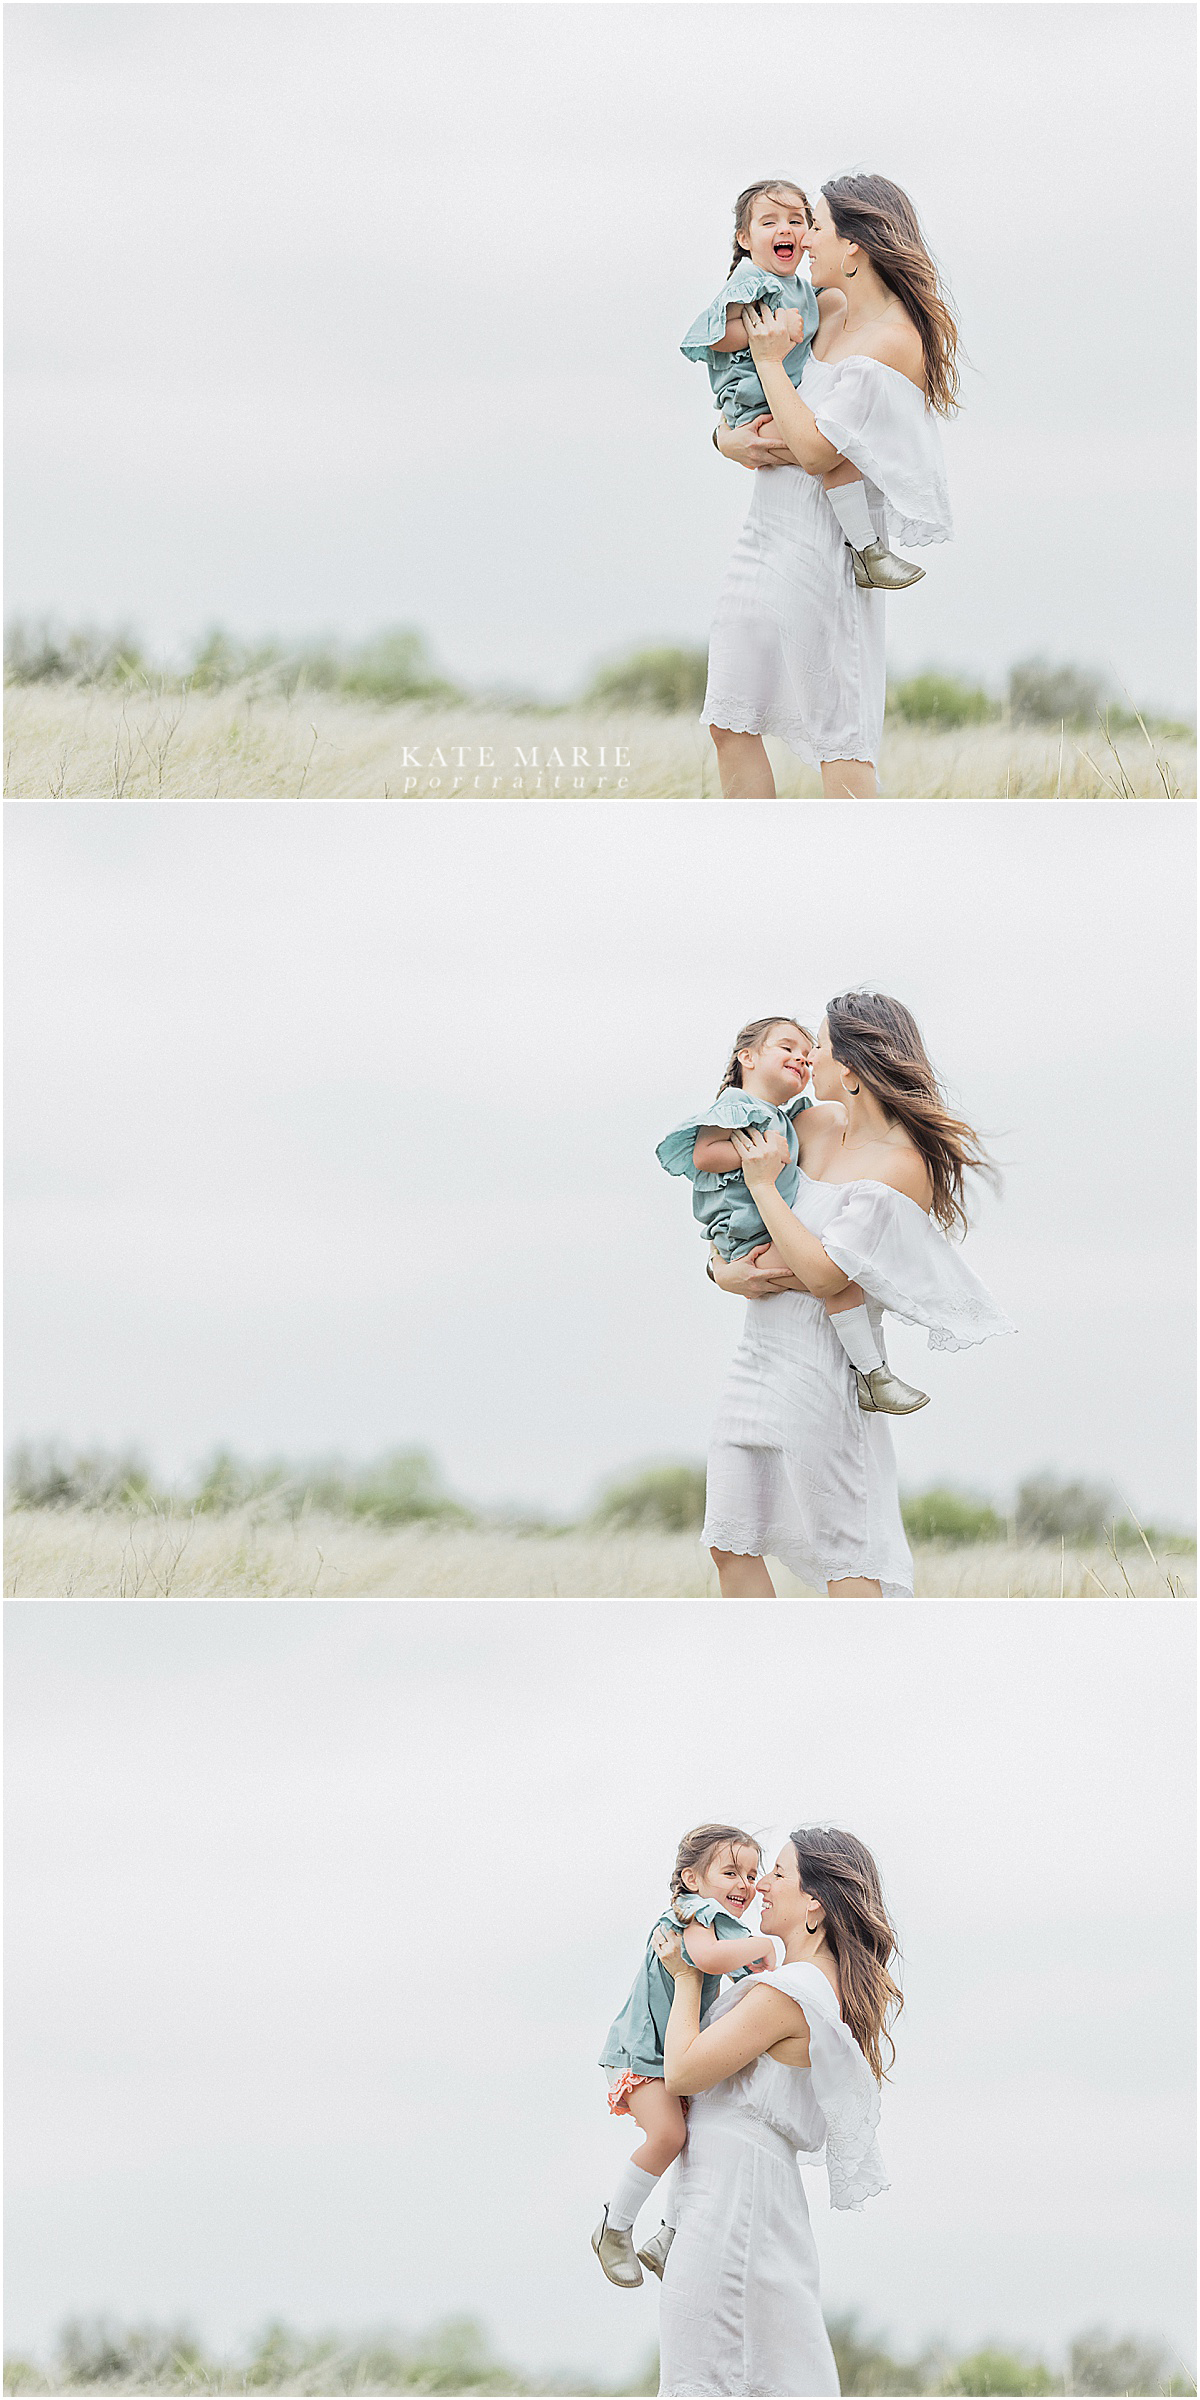 Dallas_Family_Photographer_Motherhood_coppell_Photographer kate Marie portraiture_lm_10.jpg